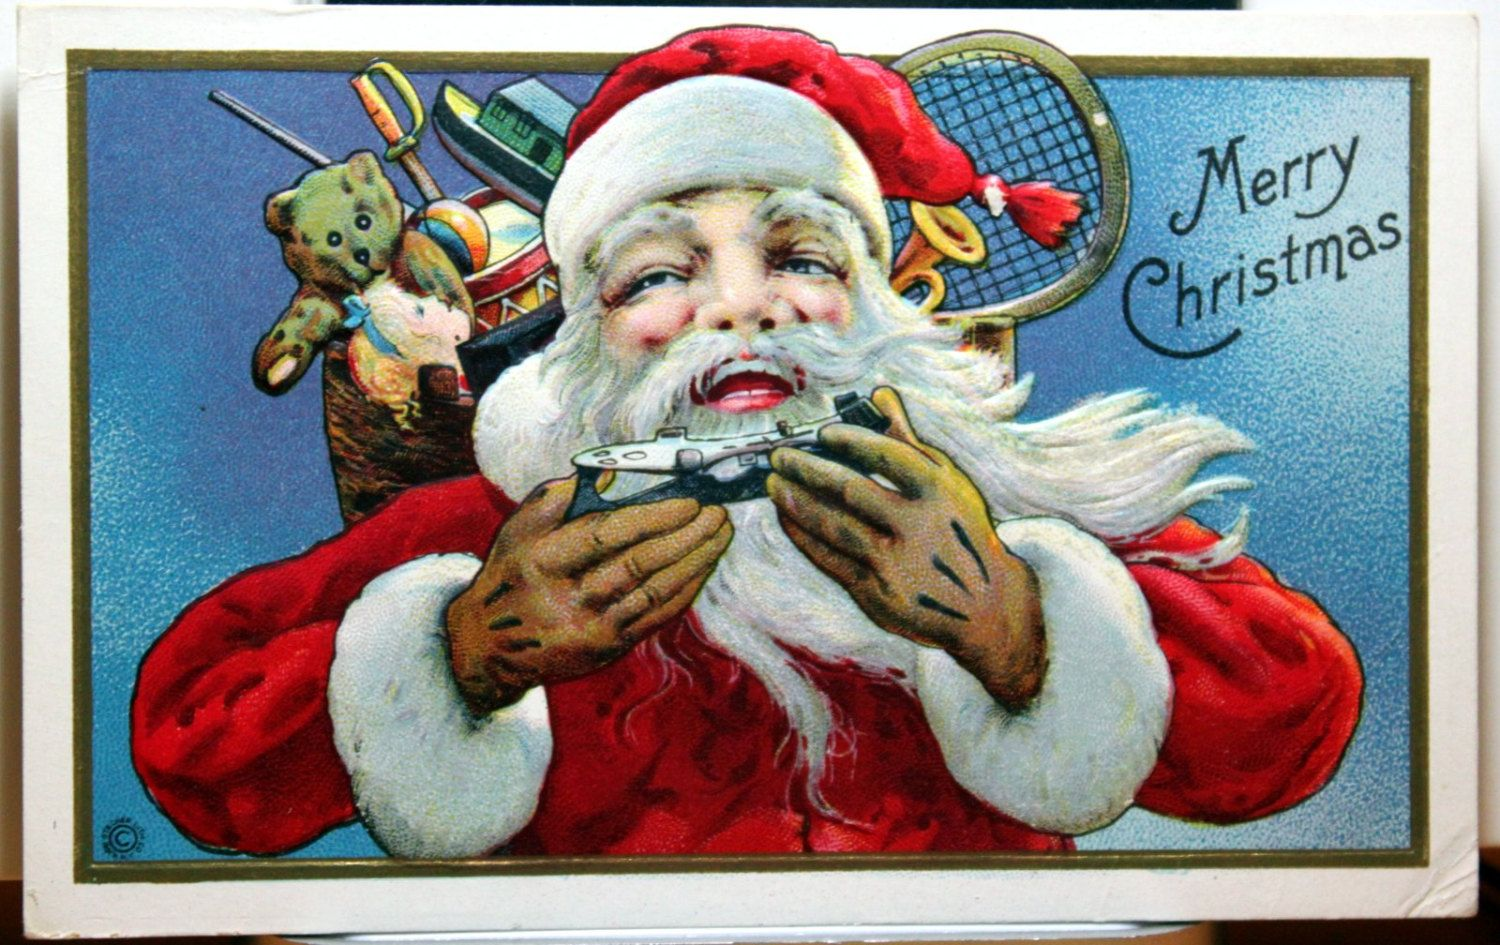 Santa Claus offering ice skates, Large Bag of toys, Close up view postcard C1910 by JerryBurton on Etsy